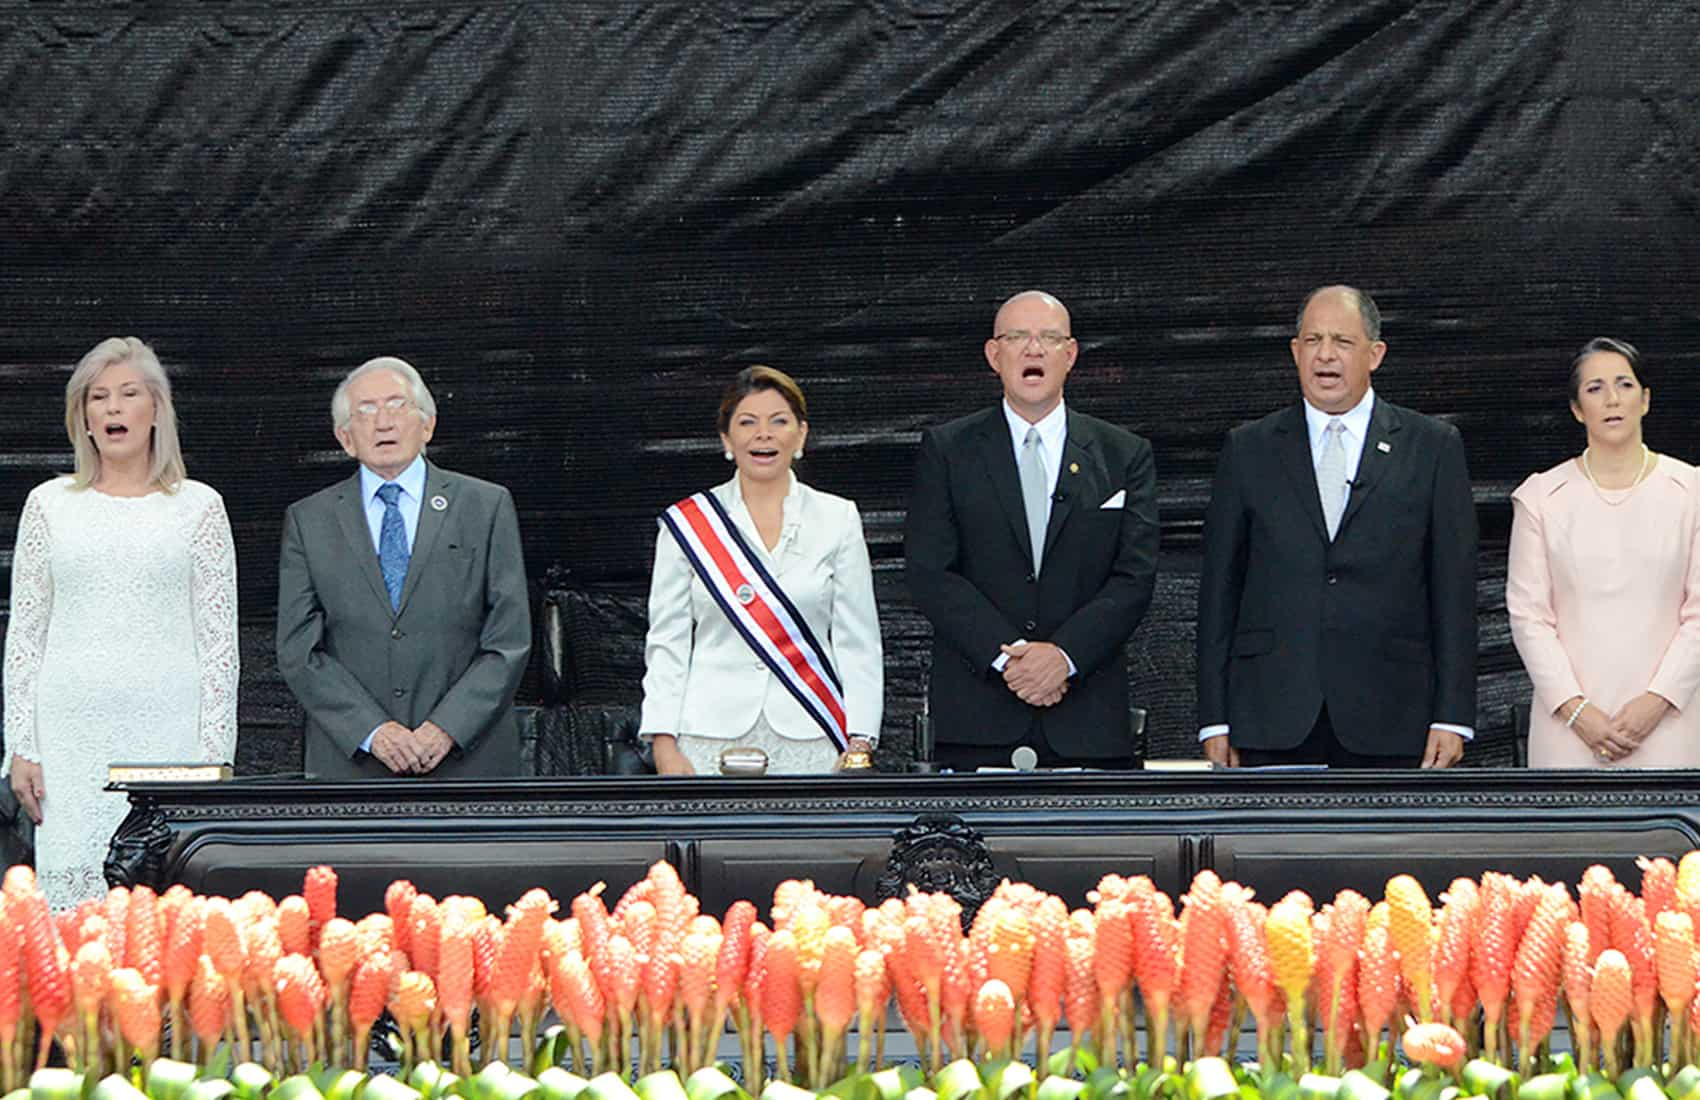 Singing the national anthem at President Luis Guillermo Solís's inauguration ceremony, May 8, 2014.